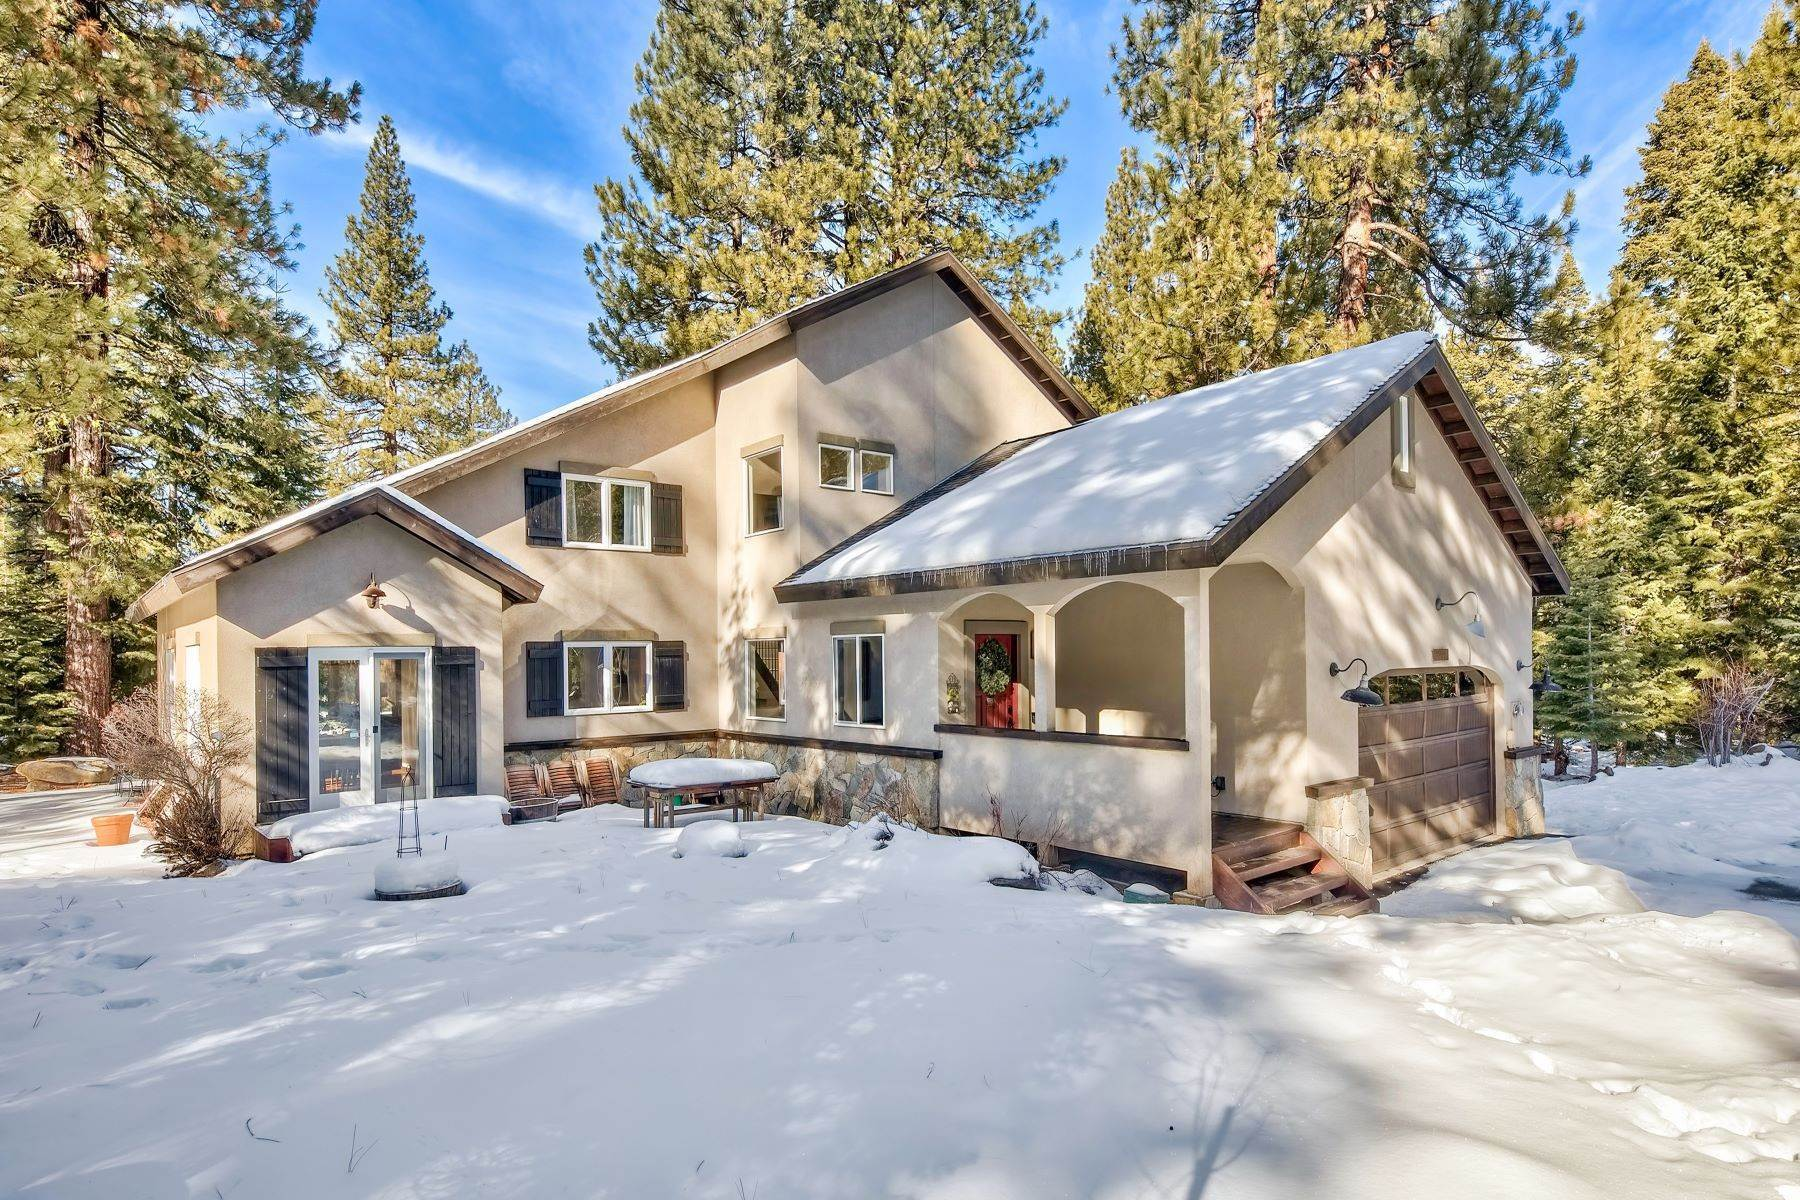 Property en Estate In The Woods 11550 Stillwater Court Truckee, California 96161 Estados Unidos